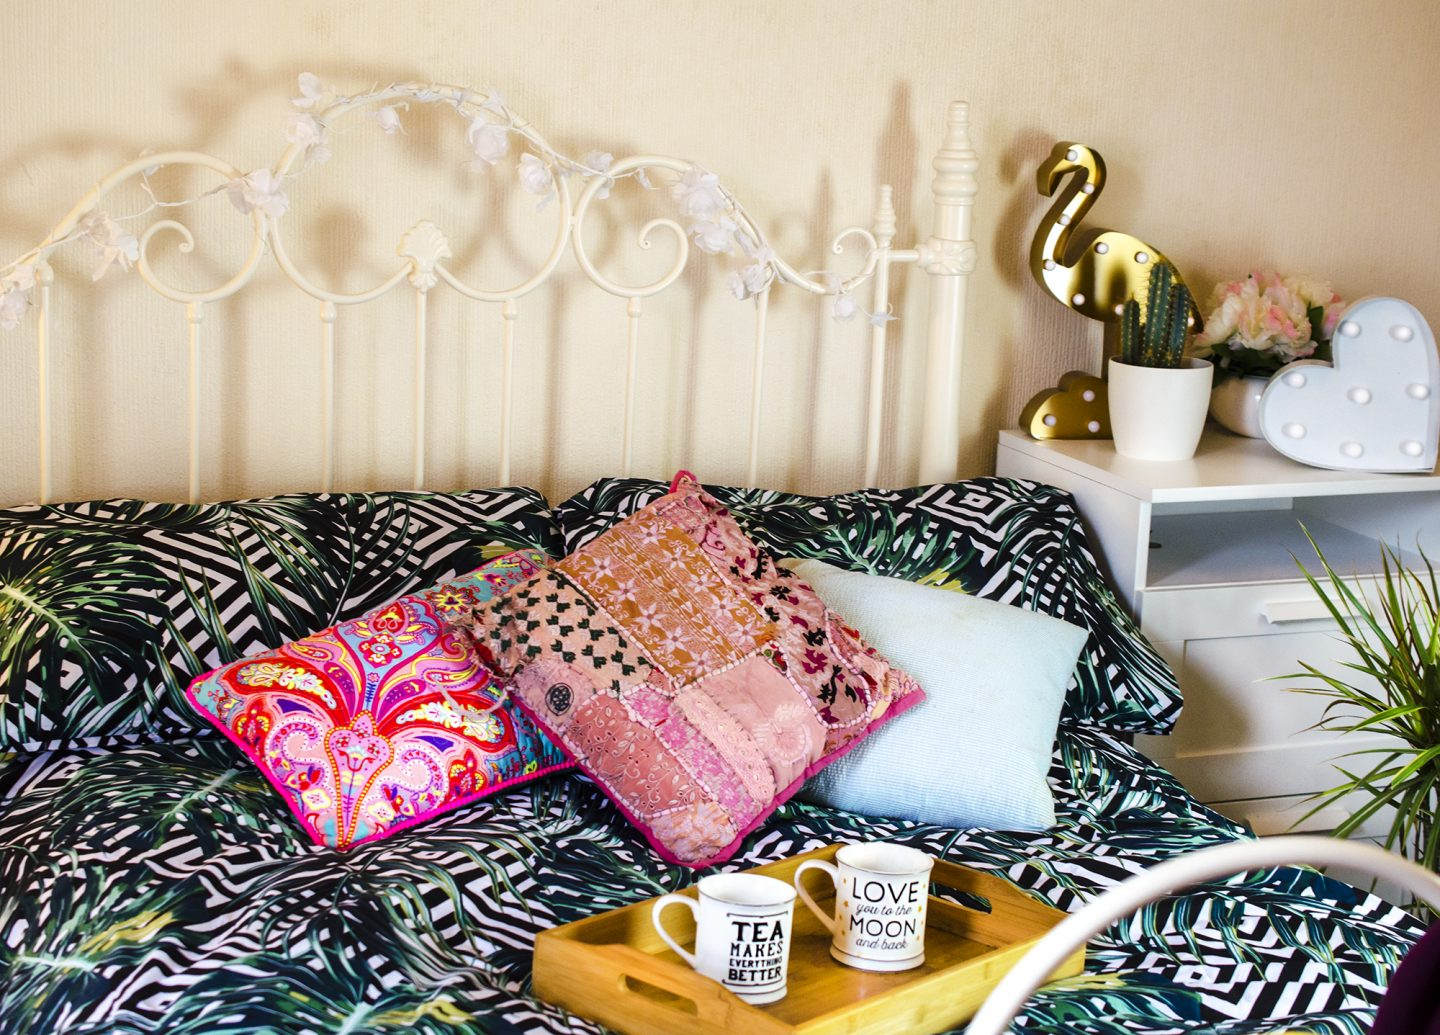 REFRESH YOUR BEDROOM WITH DUVET COVERS